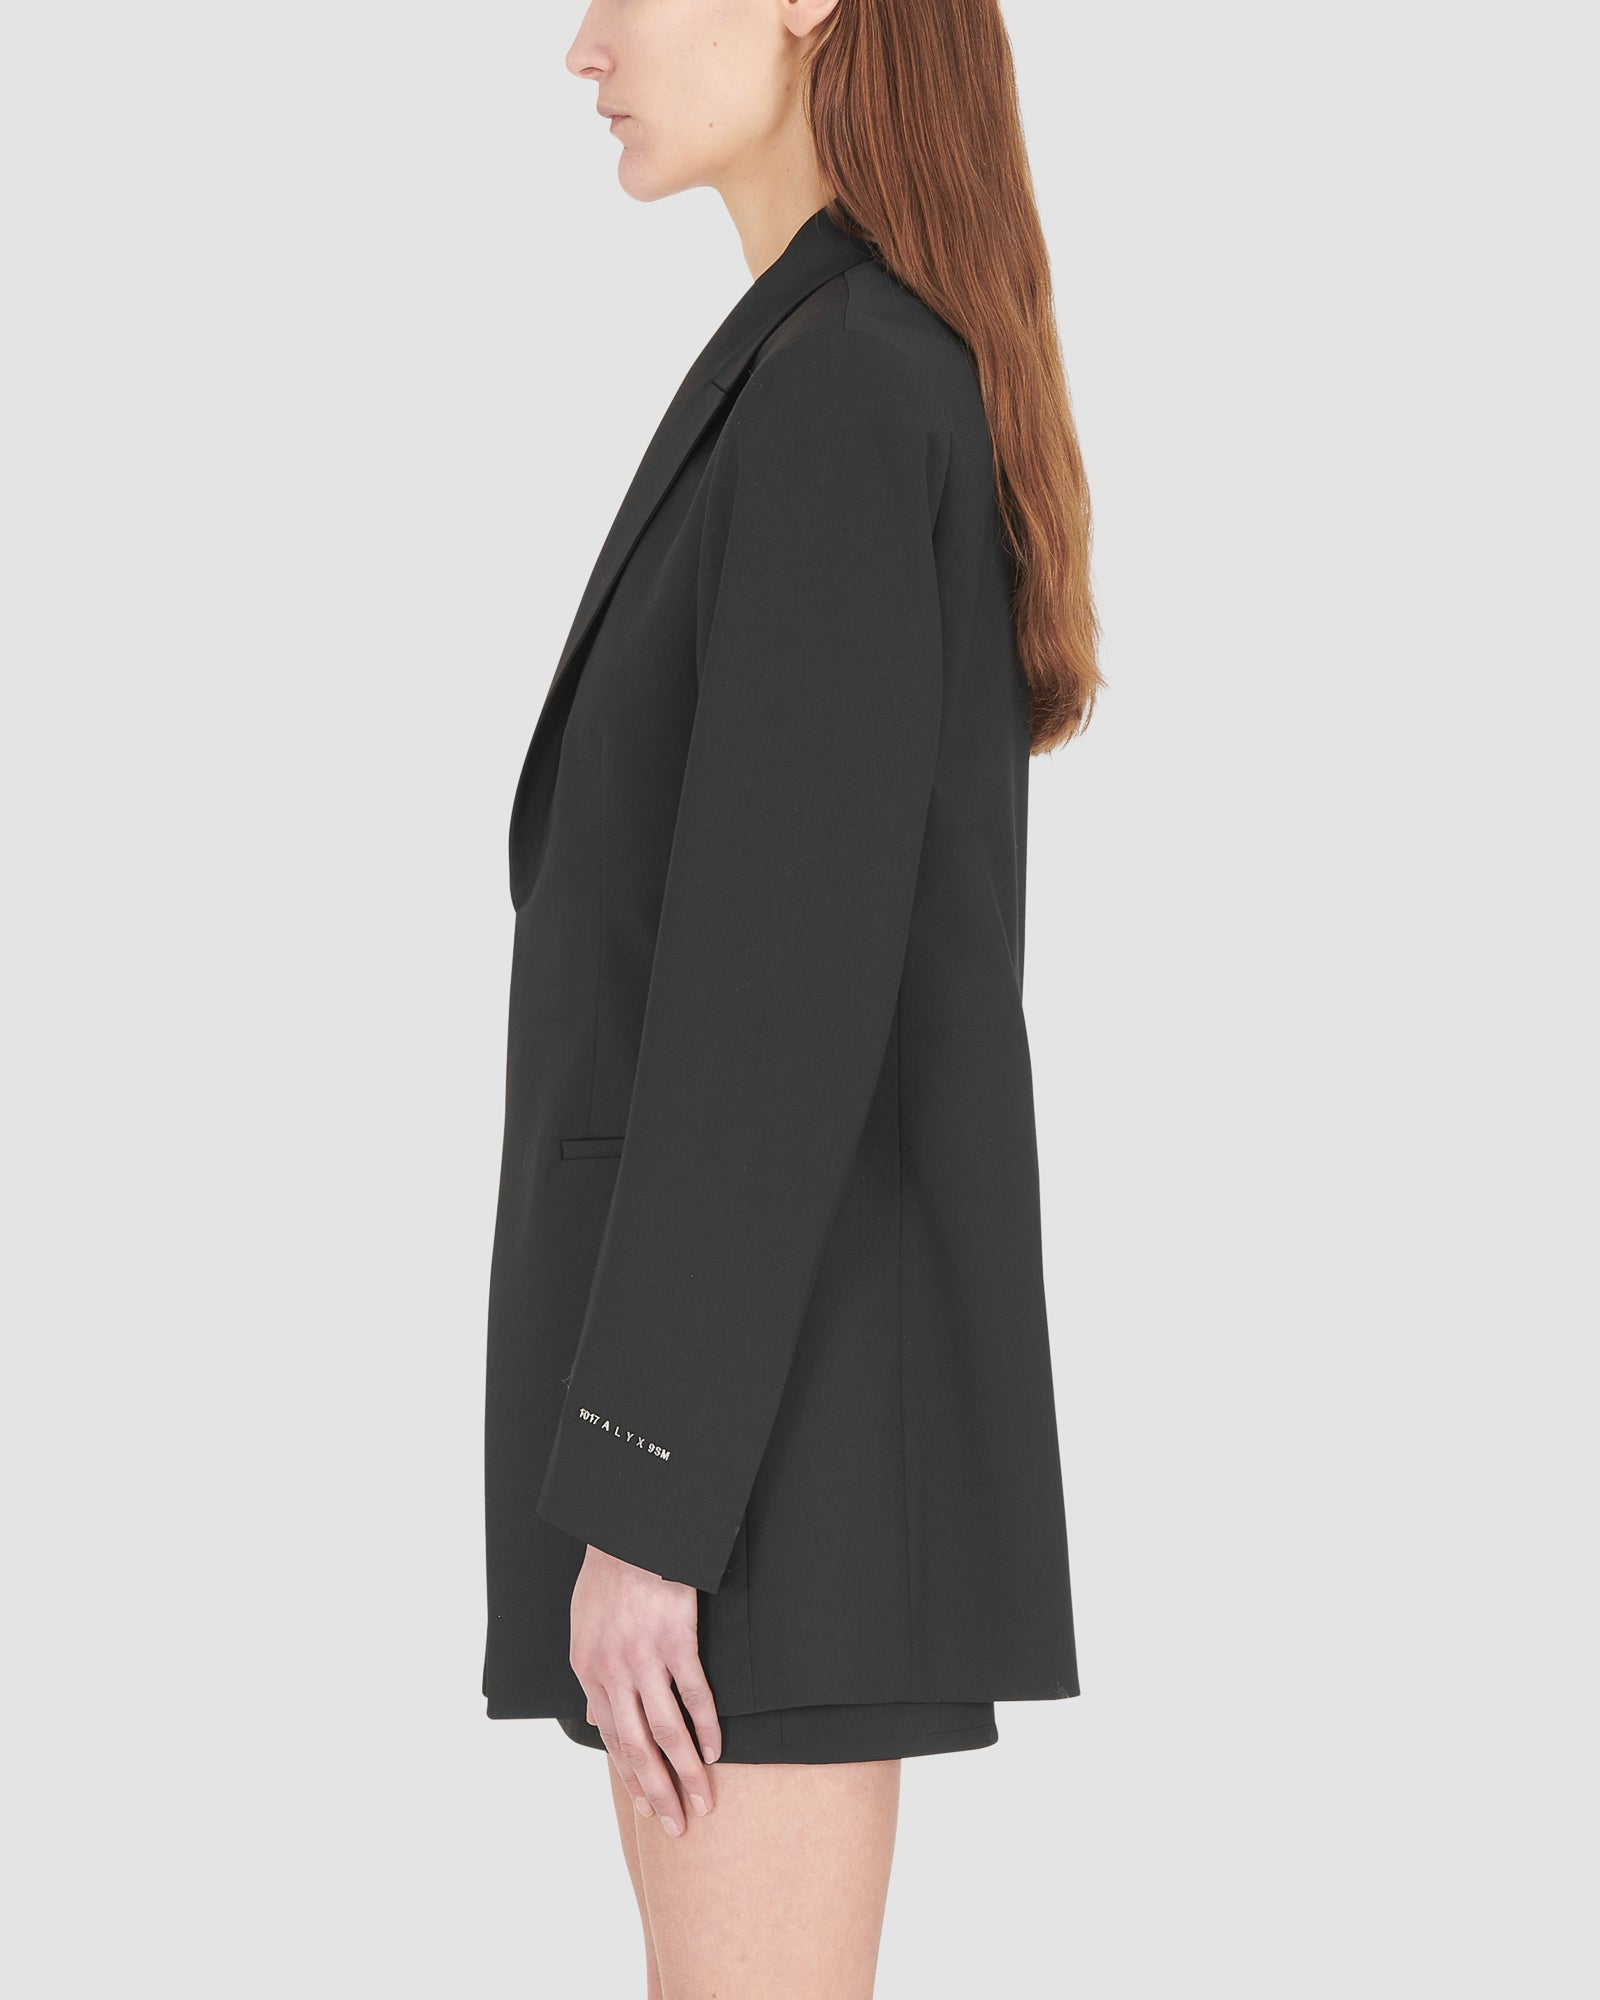 EXPLODED TAILORING JACKET PRE-ORDER